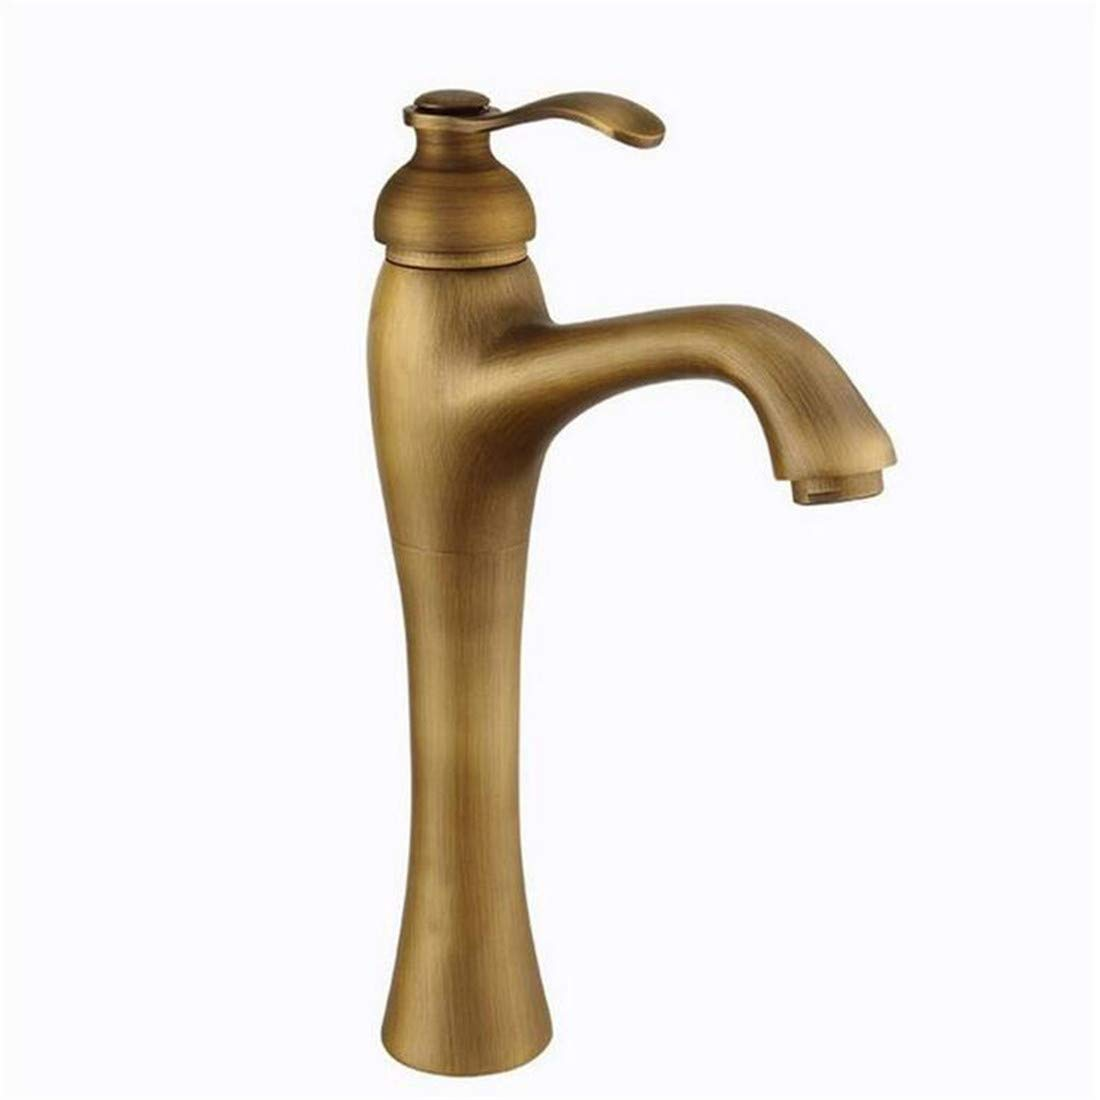 Retro Tap Modern Luxury Vintage Platingfaucet Antique Basin Faucet Hot and Cold Water Tap Bathroom Sink Faucets